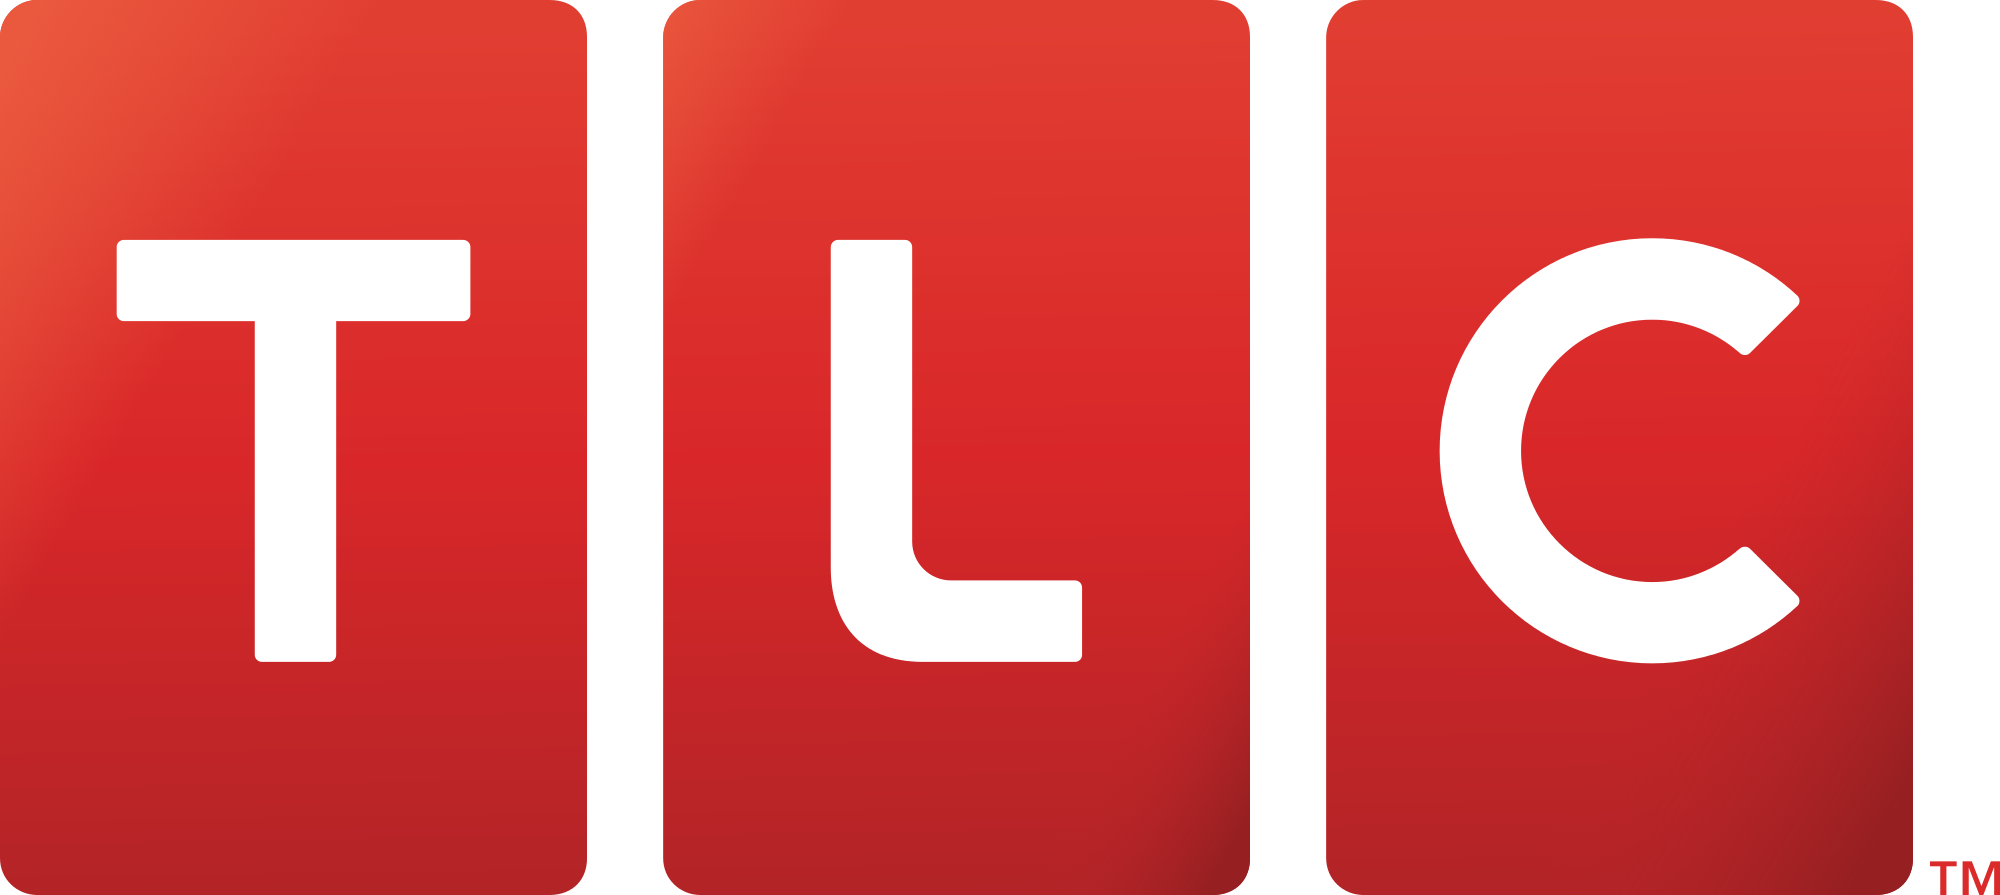 UPDATED TLC LOGO